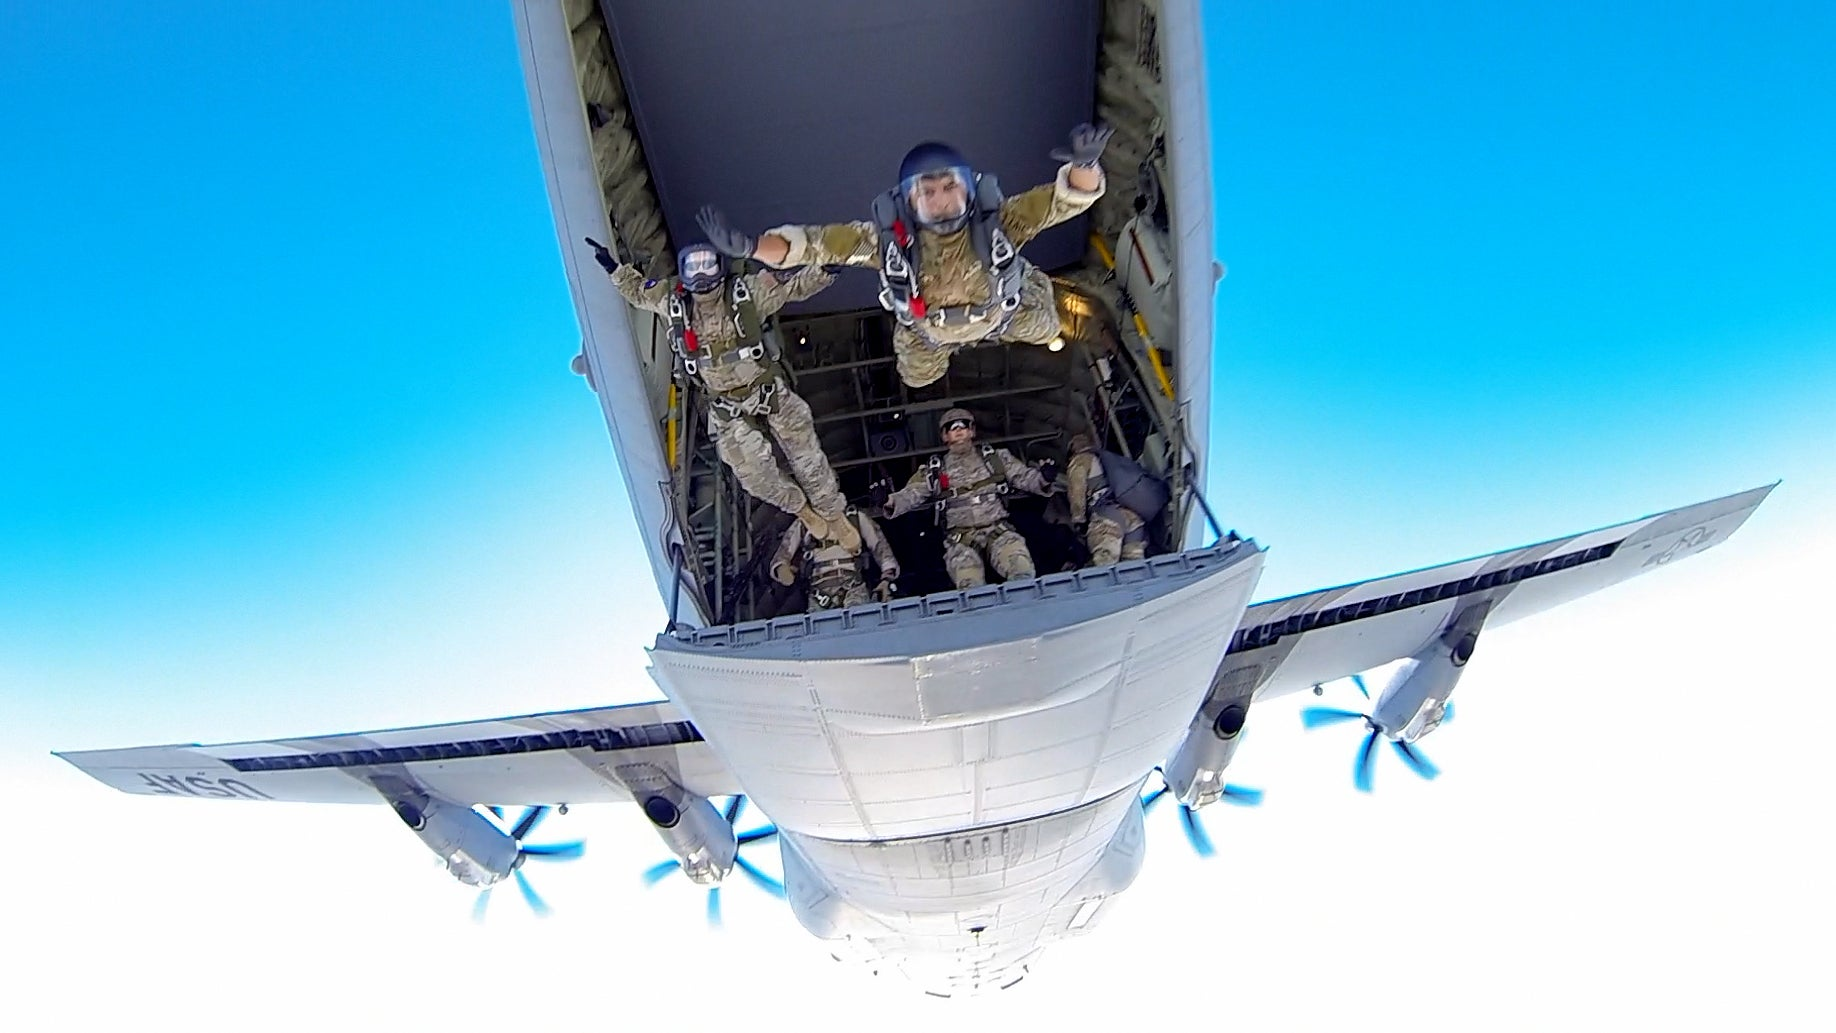 Awesome Photo of US Air Force Airmen Jumping Off a C-130 Hercules Aircraft